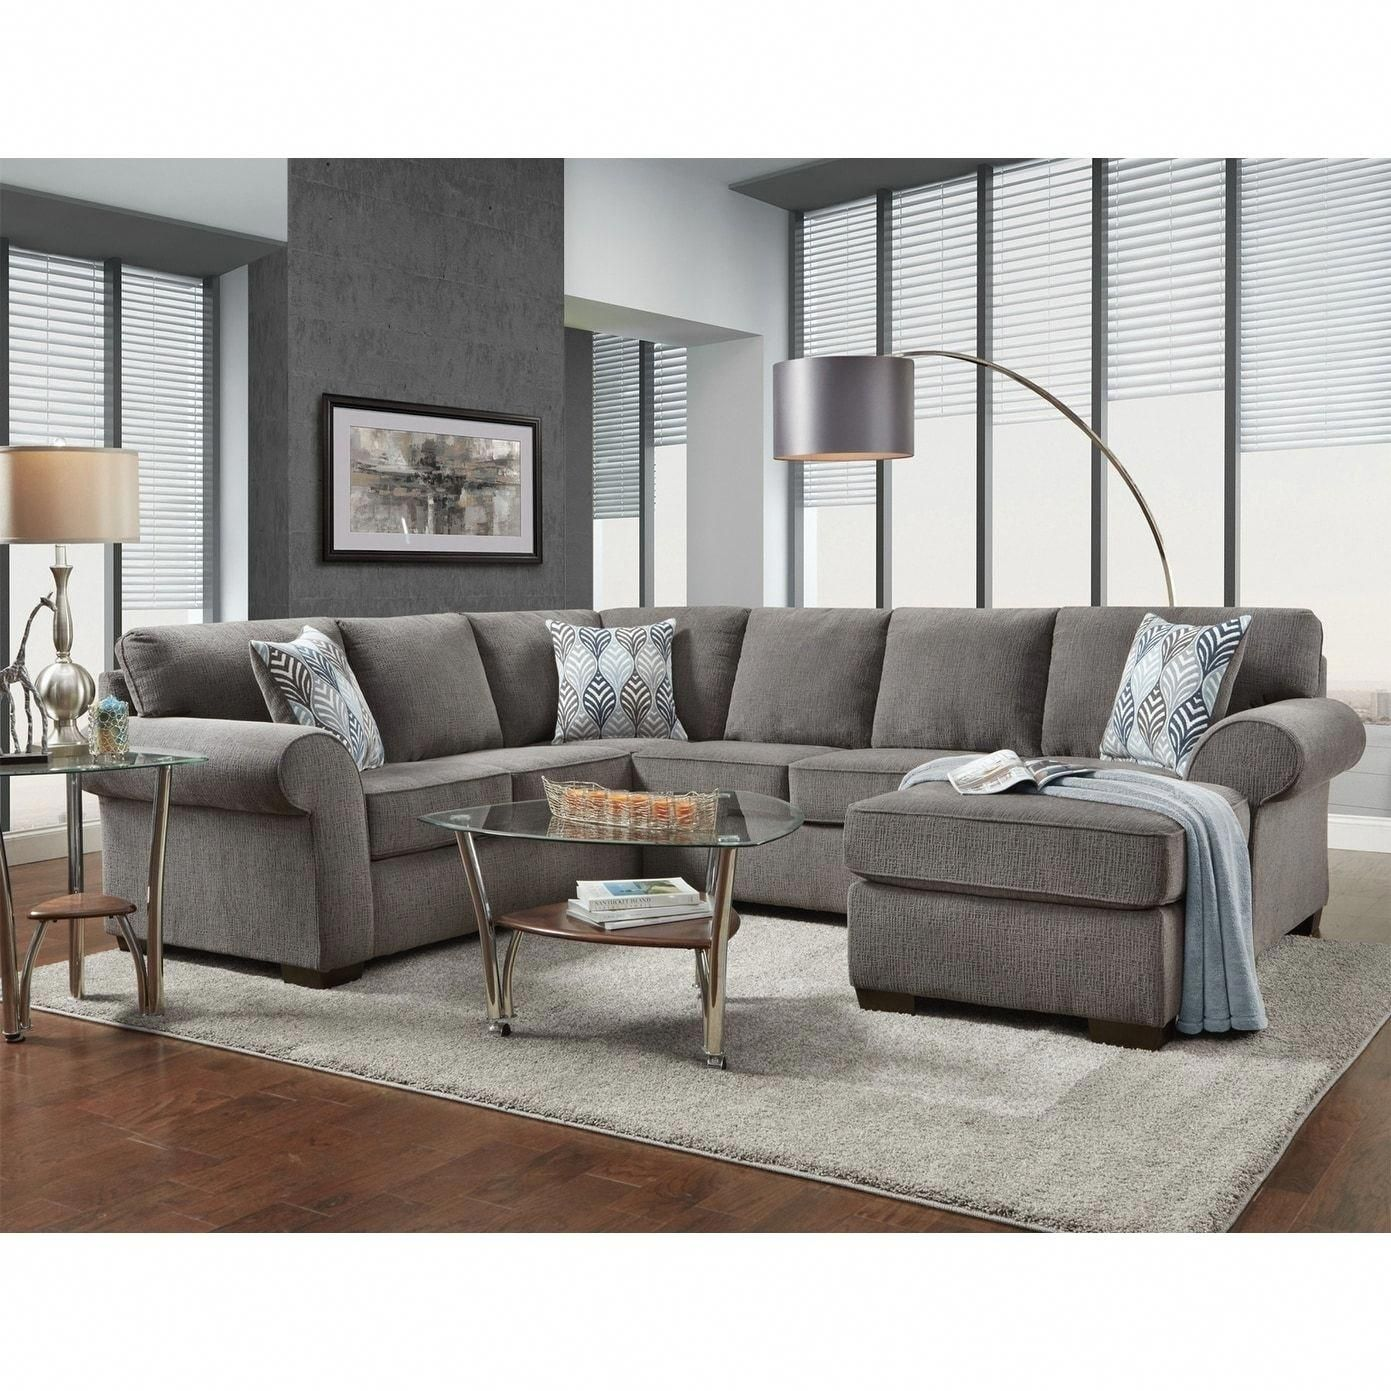 12 Splendid Sectional Sofas With Sleeper Sectional Sofas And Couches On Sale Furniturewe Living Room Sectional Affordable Furniture Sectional Living Room Sets